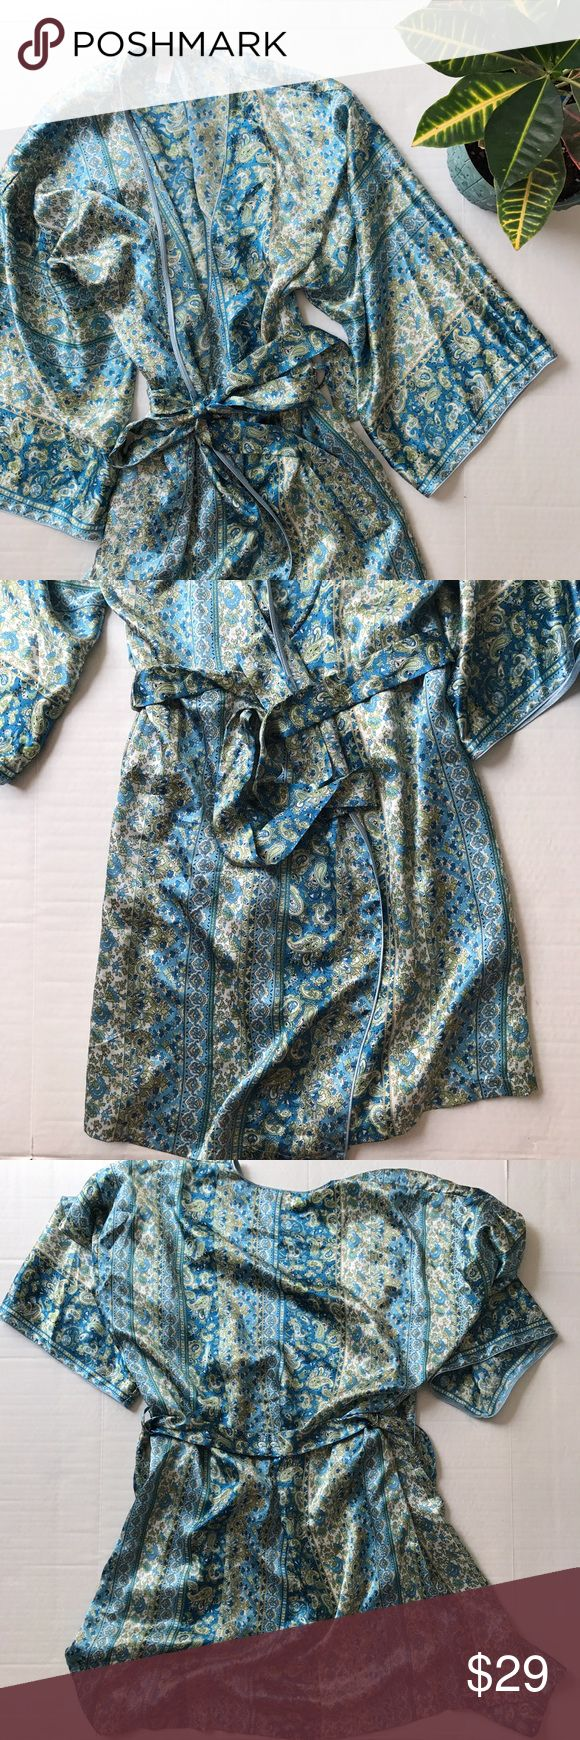 Oscar de la Renta Pink Label Paisley Robe Paisley robe from Oscar de la Renta Pink Label. Size: S. Color: greens and blues. Silky wrap style robe with outside and inside ties, pockets. 100% polyester. 39 inches long. Oscar de la Renta Intimates & Sleepwear Robes